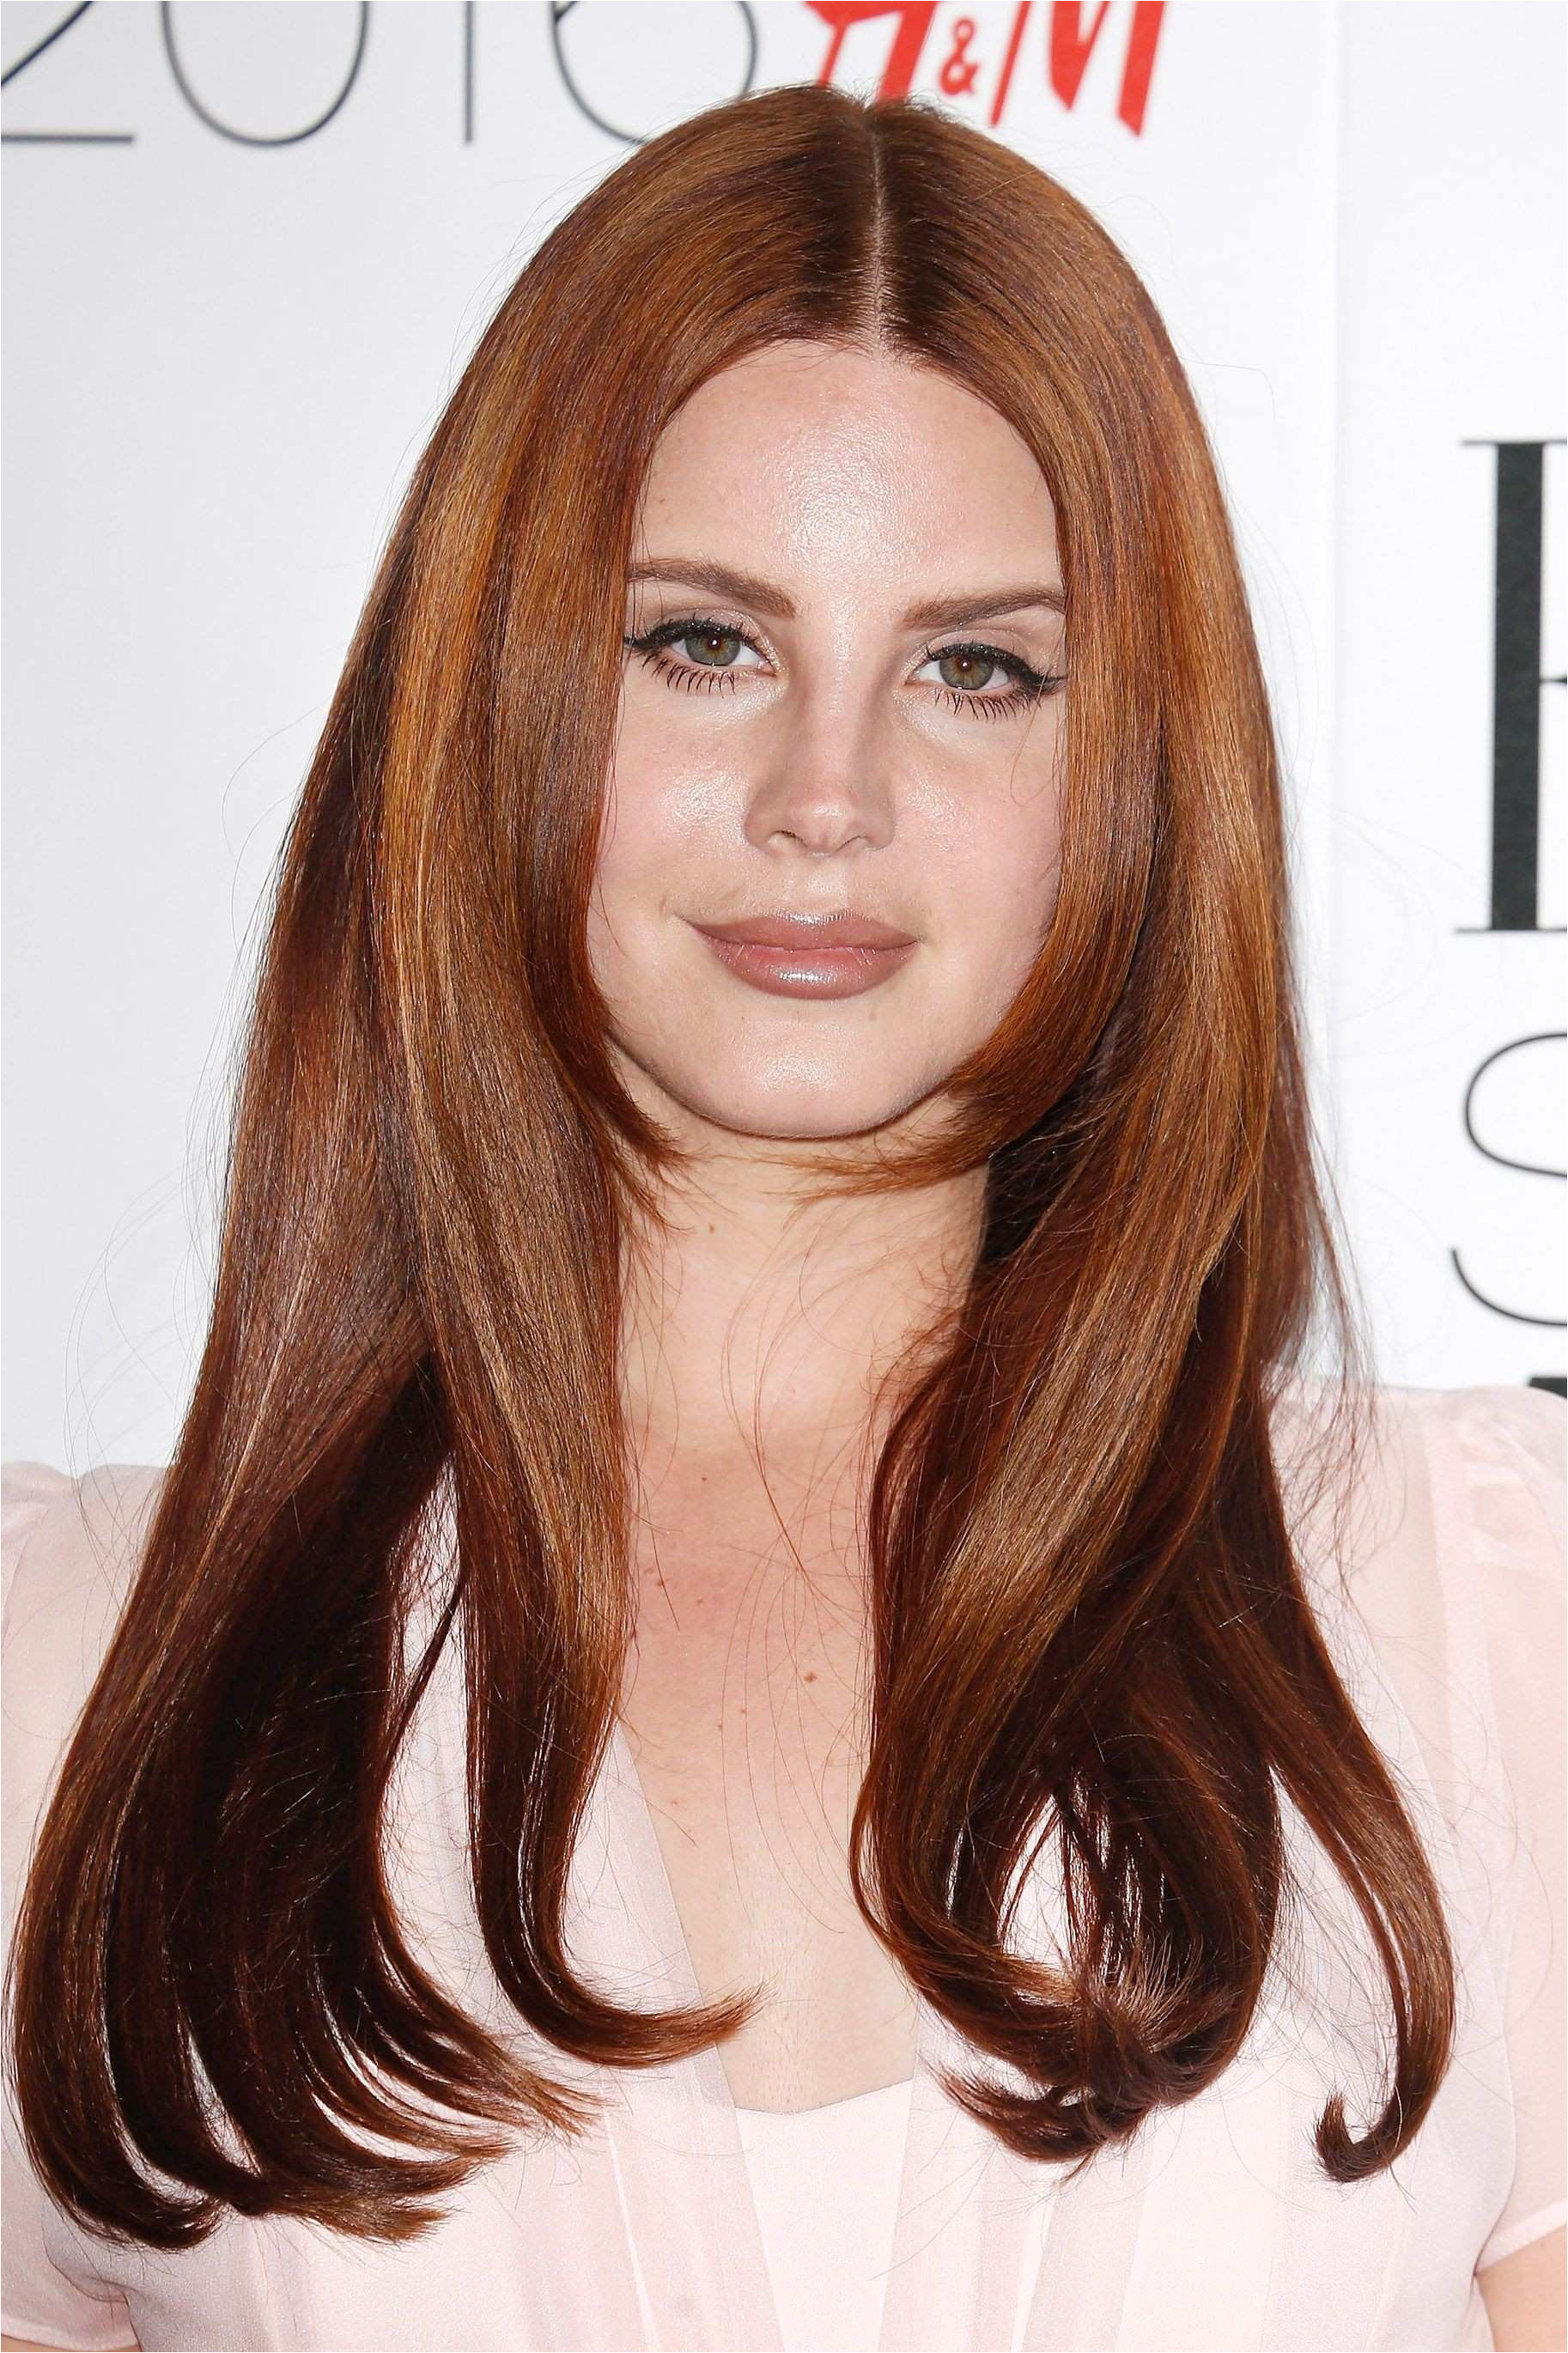 Hairstyles For Girls Elegant Hairstyles For Girls Best Dyed Hair Trends And Hair Dye Styles